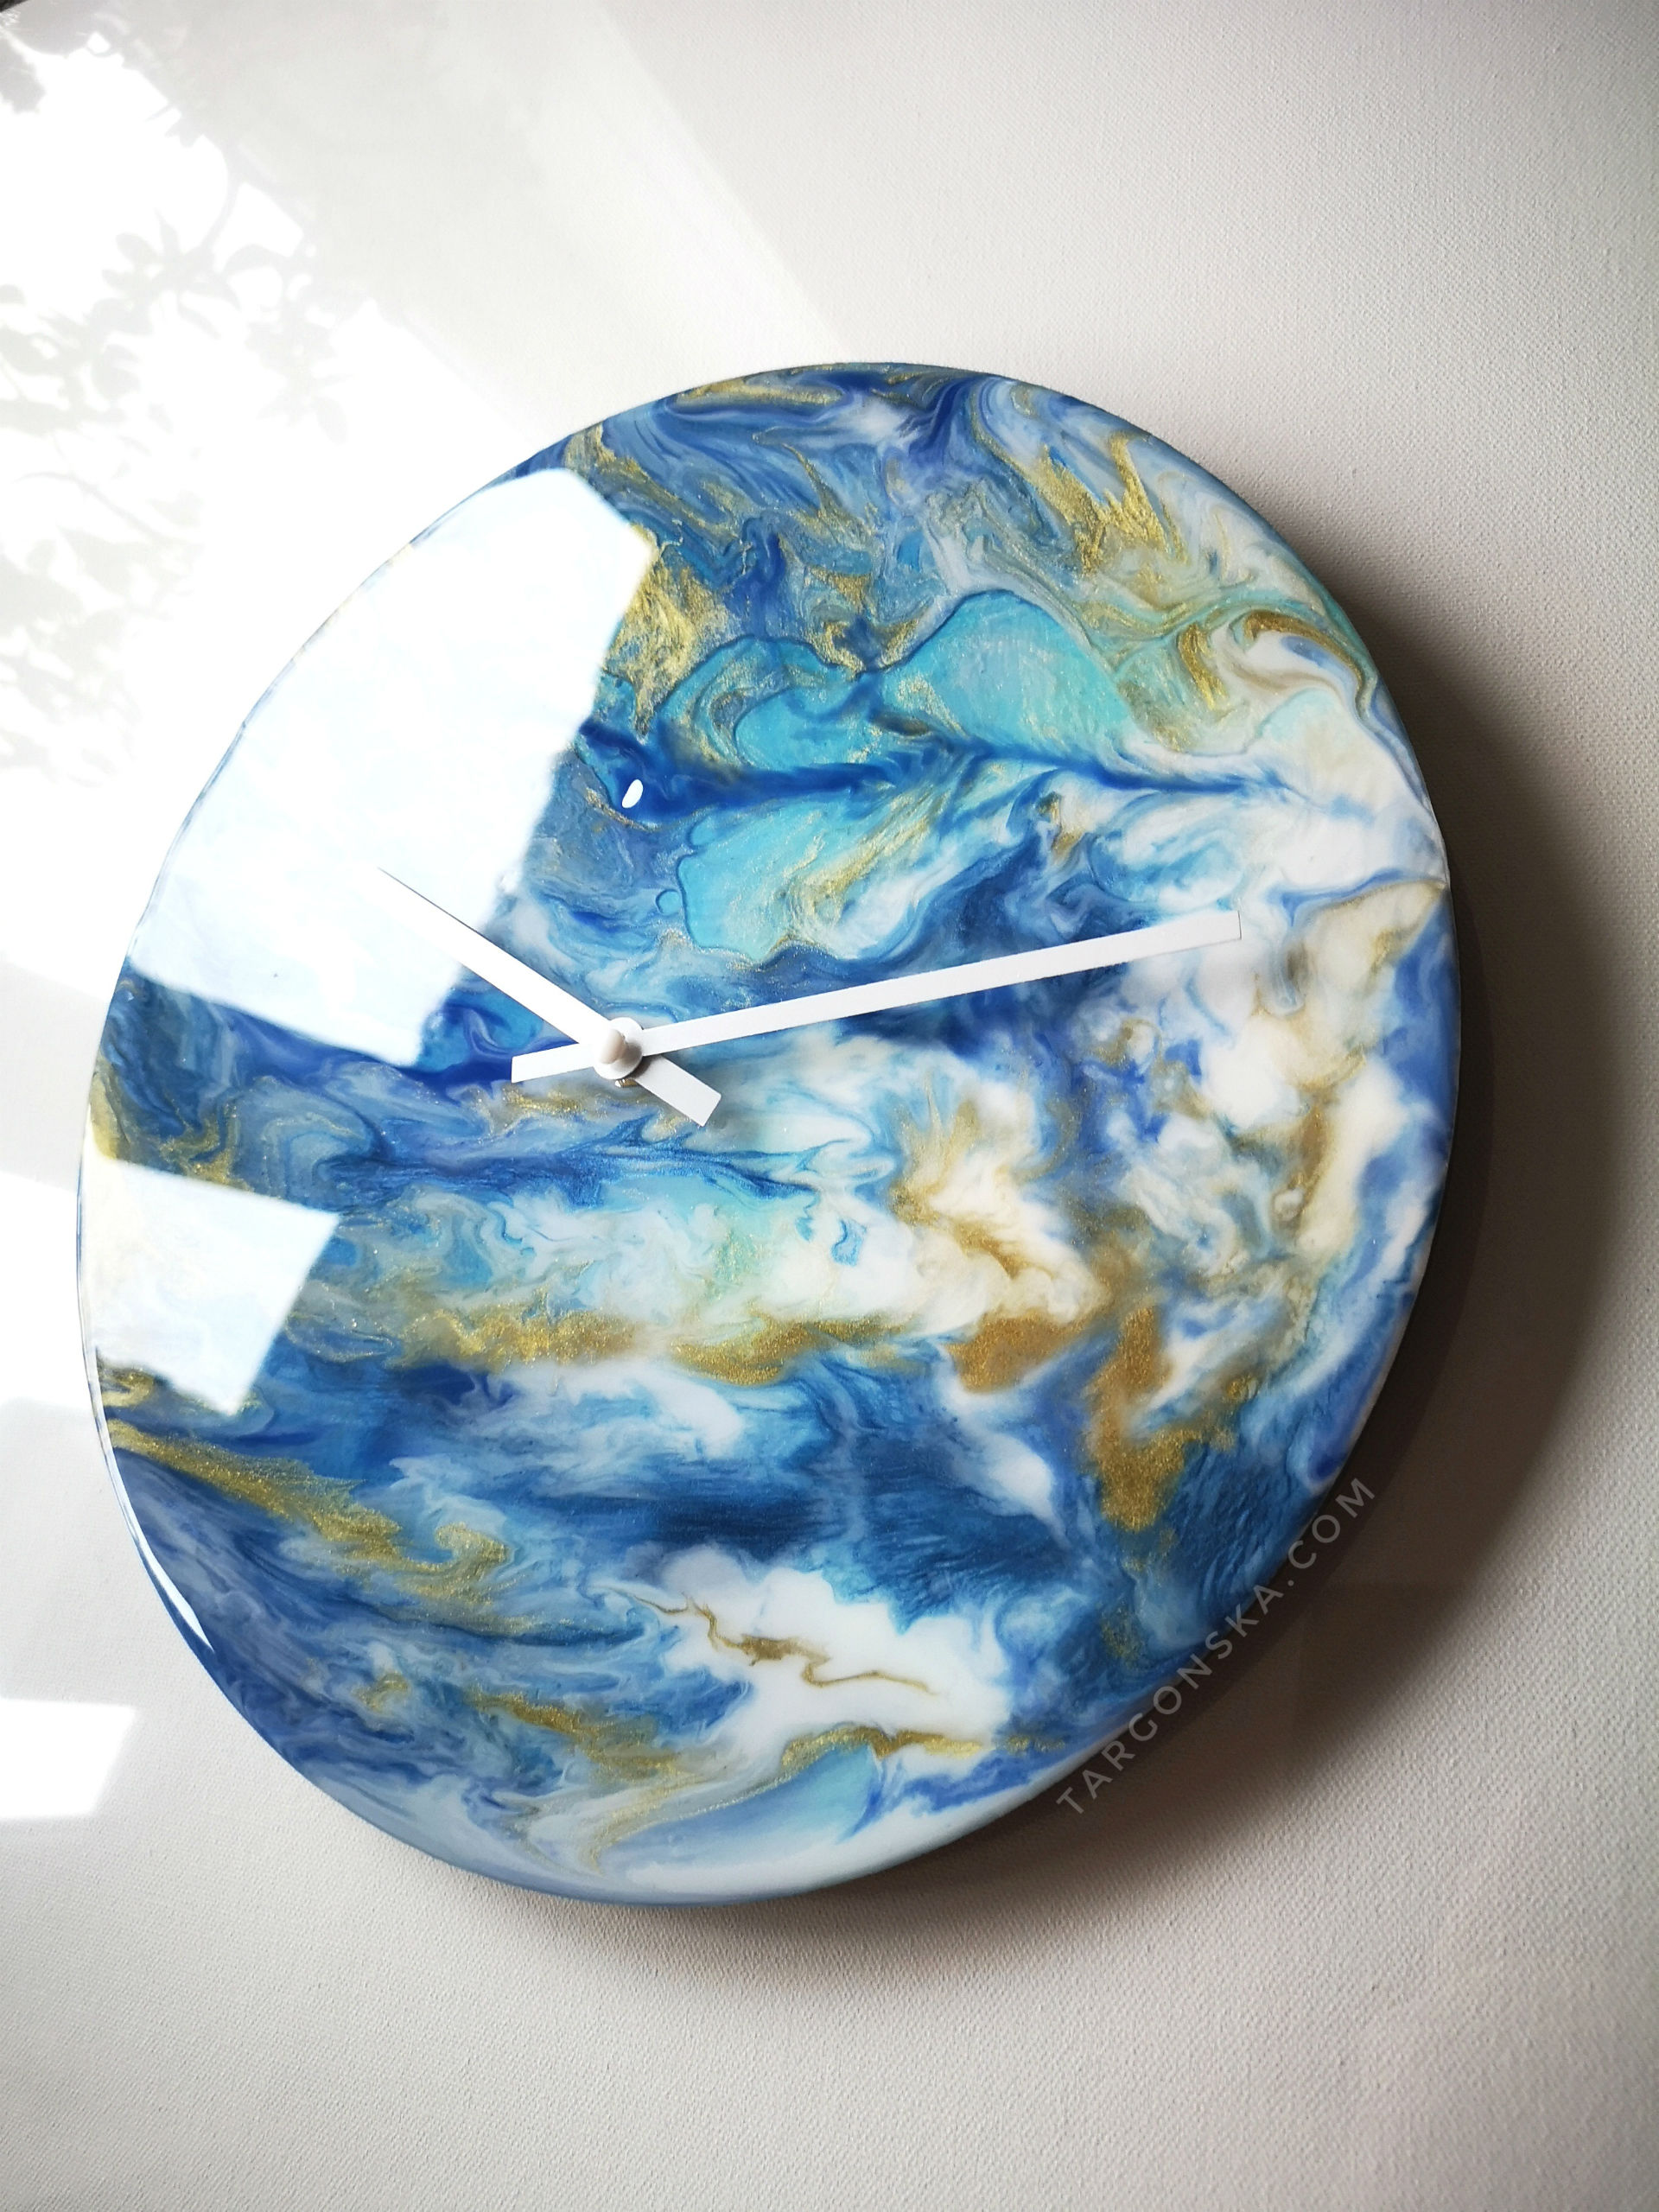 Resin Clock by Malgorzata Targonska -shadows